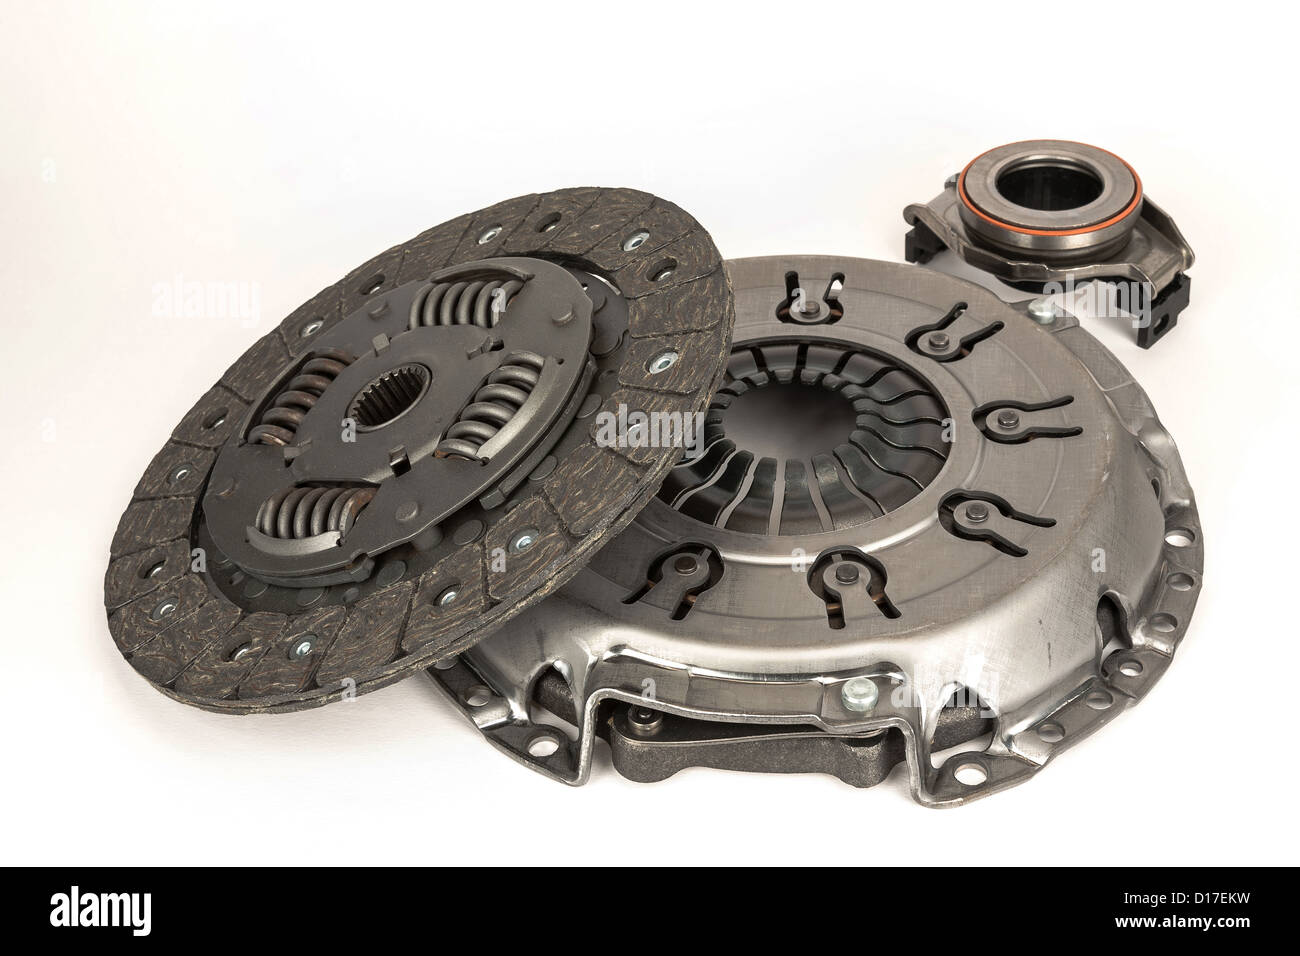 Clutch kit - Stock Image